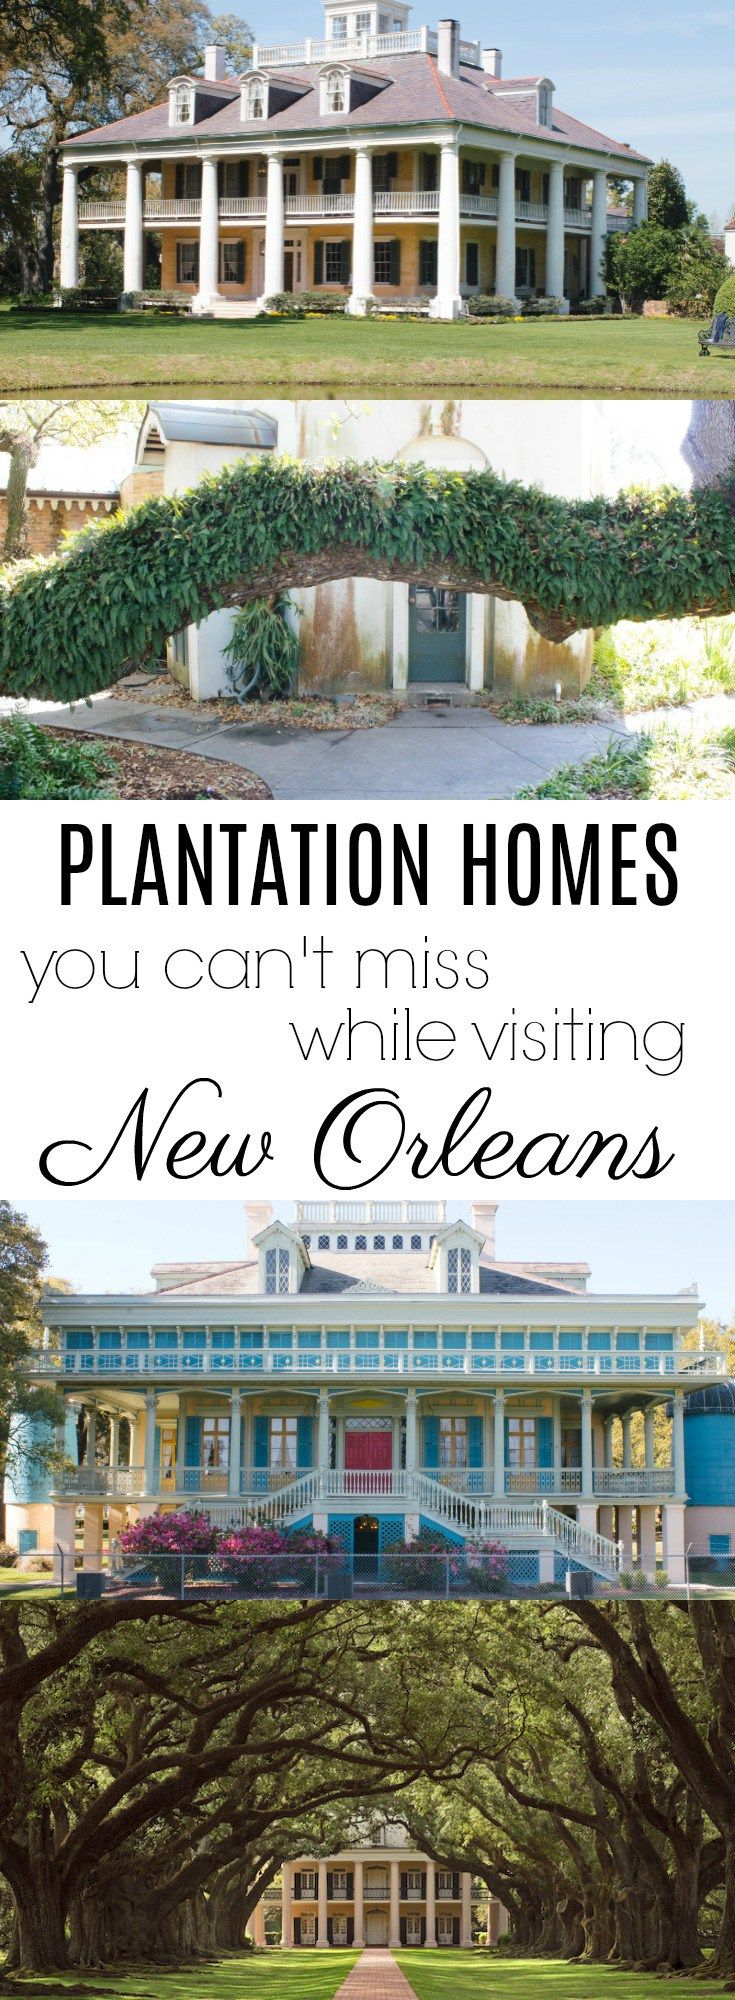 Louisiana plantation homes to visit while in New Orleans